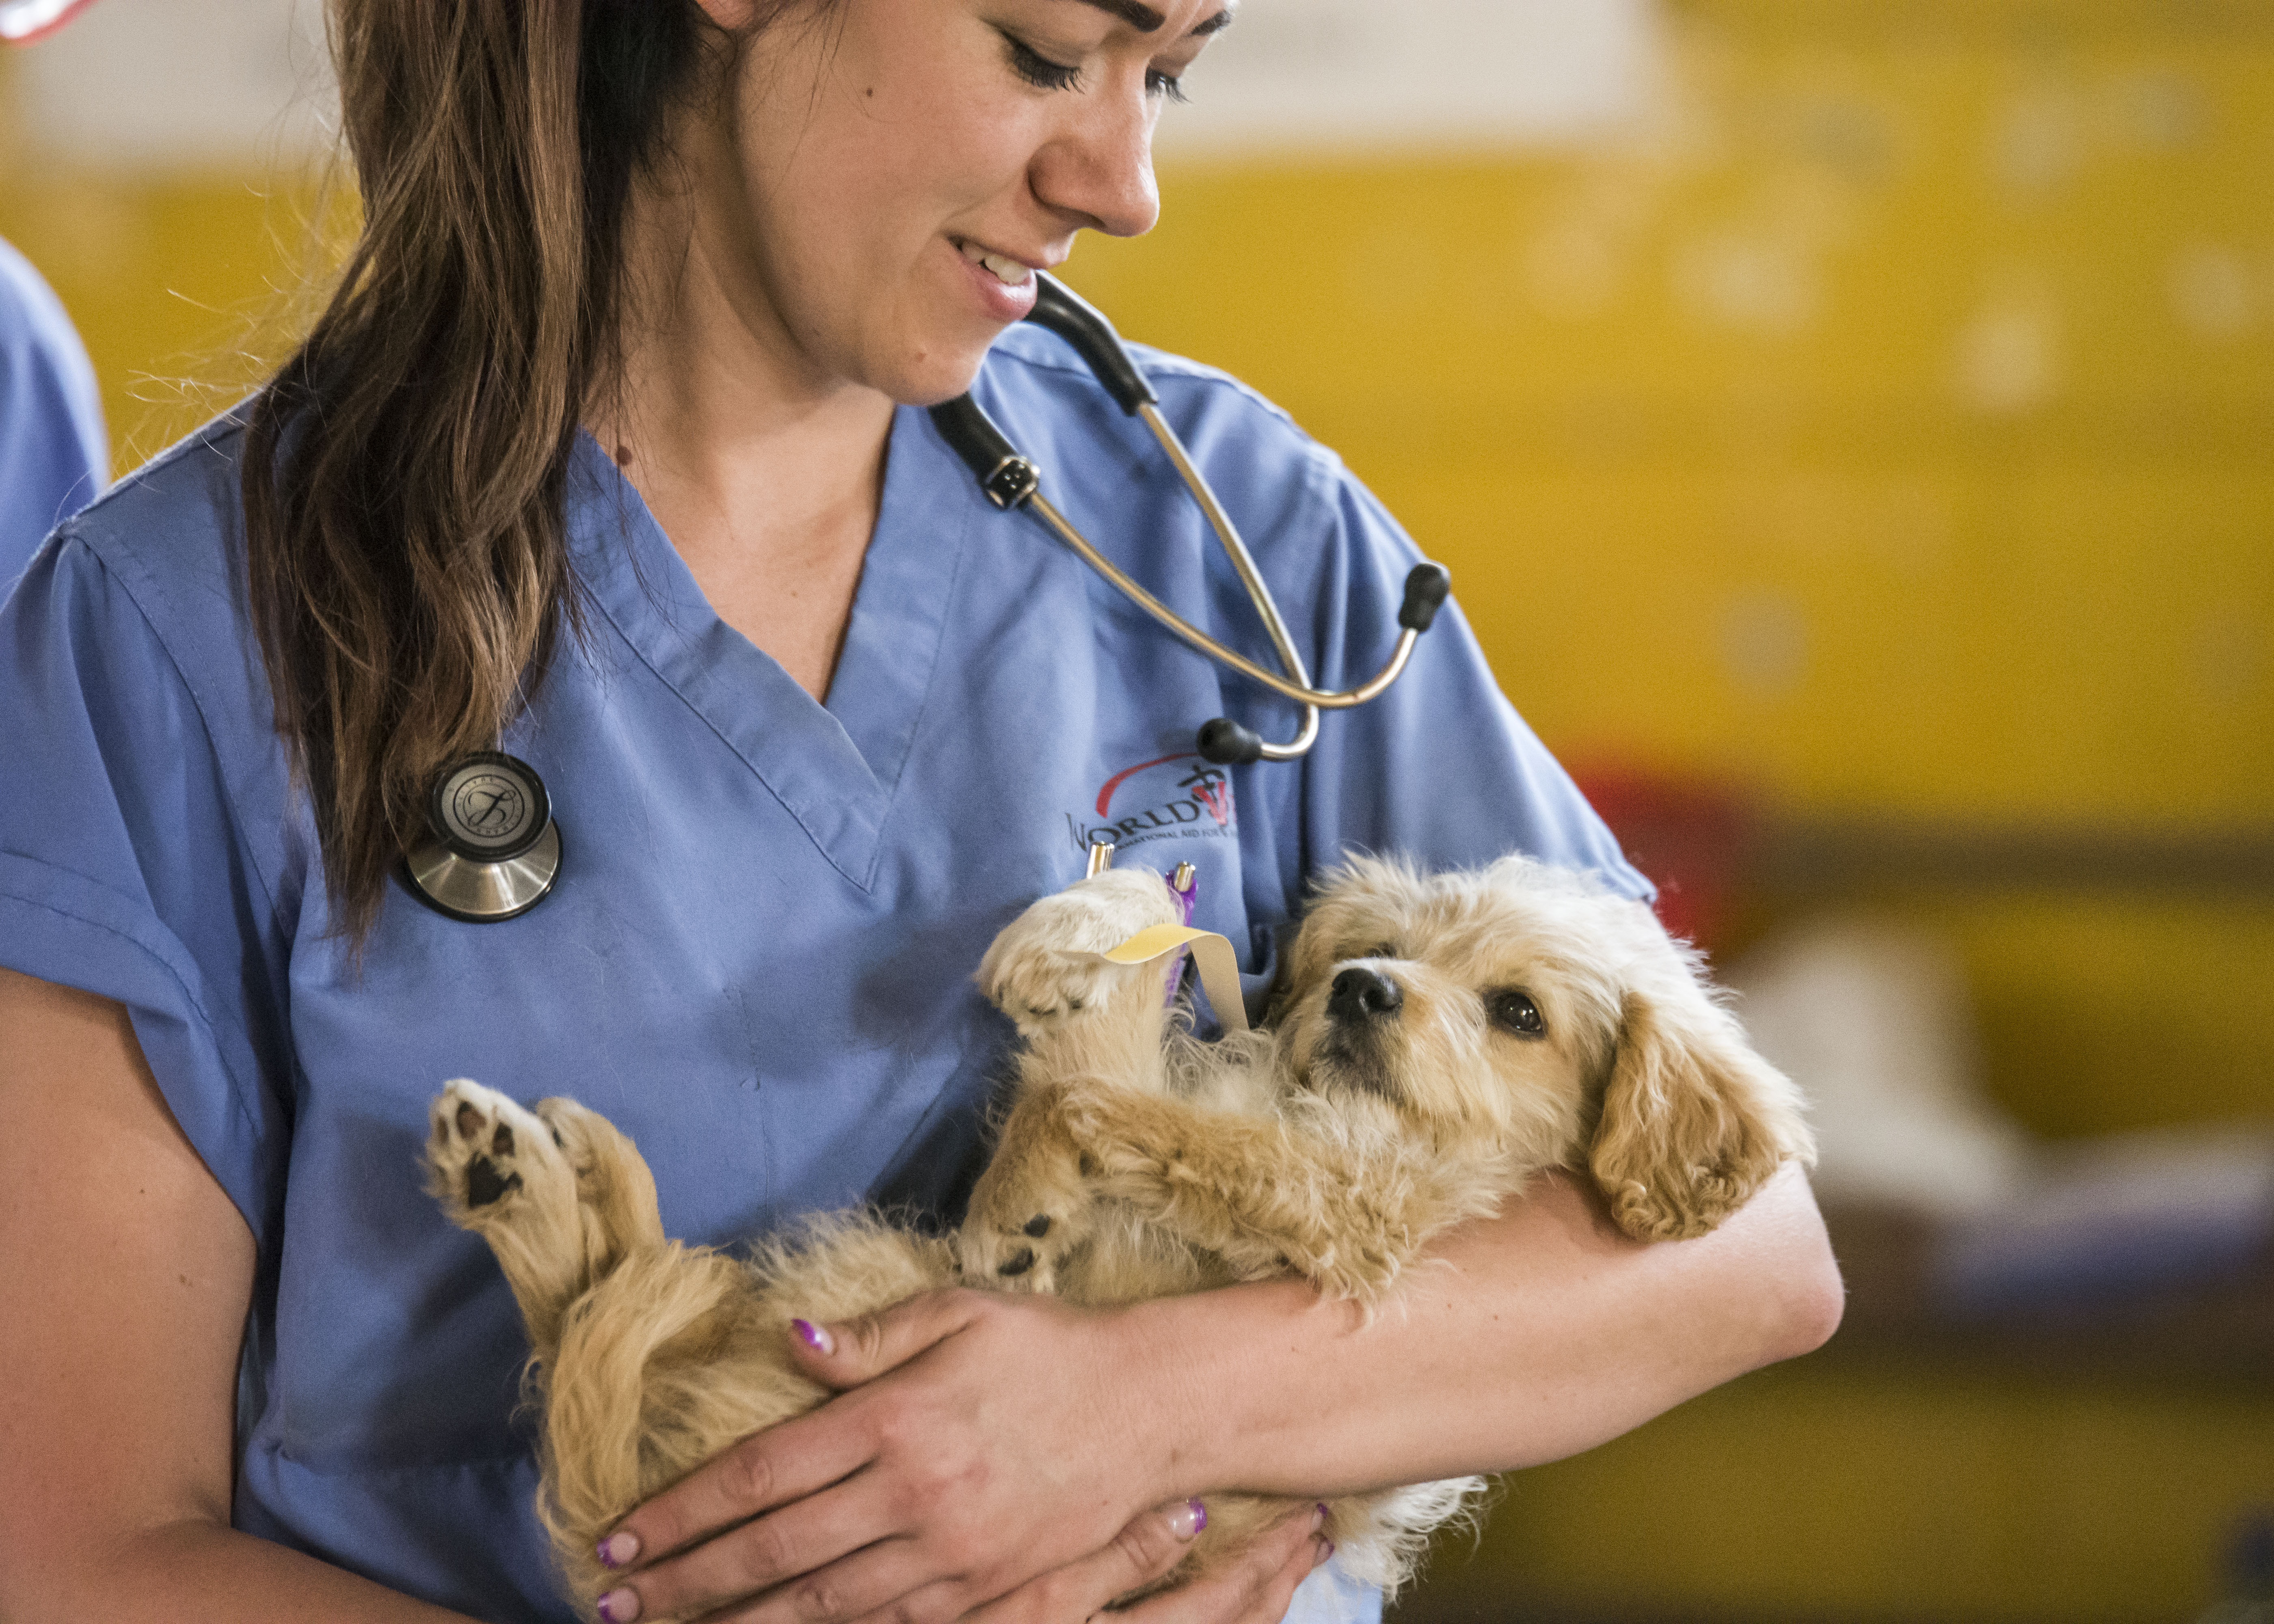 spay neuter - world vets - our mission is to improve the health and